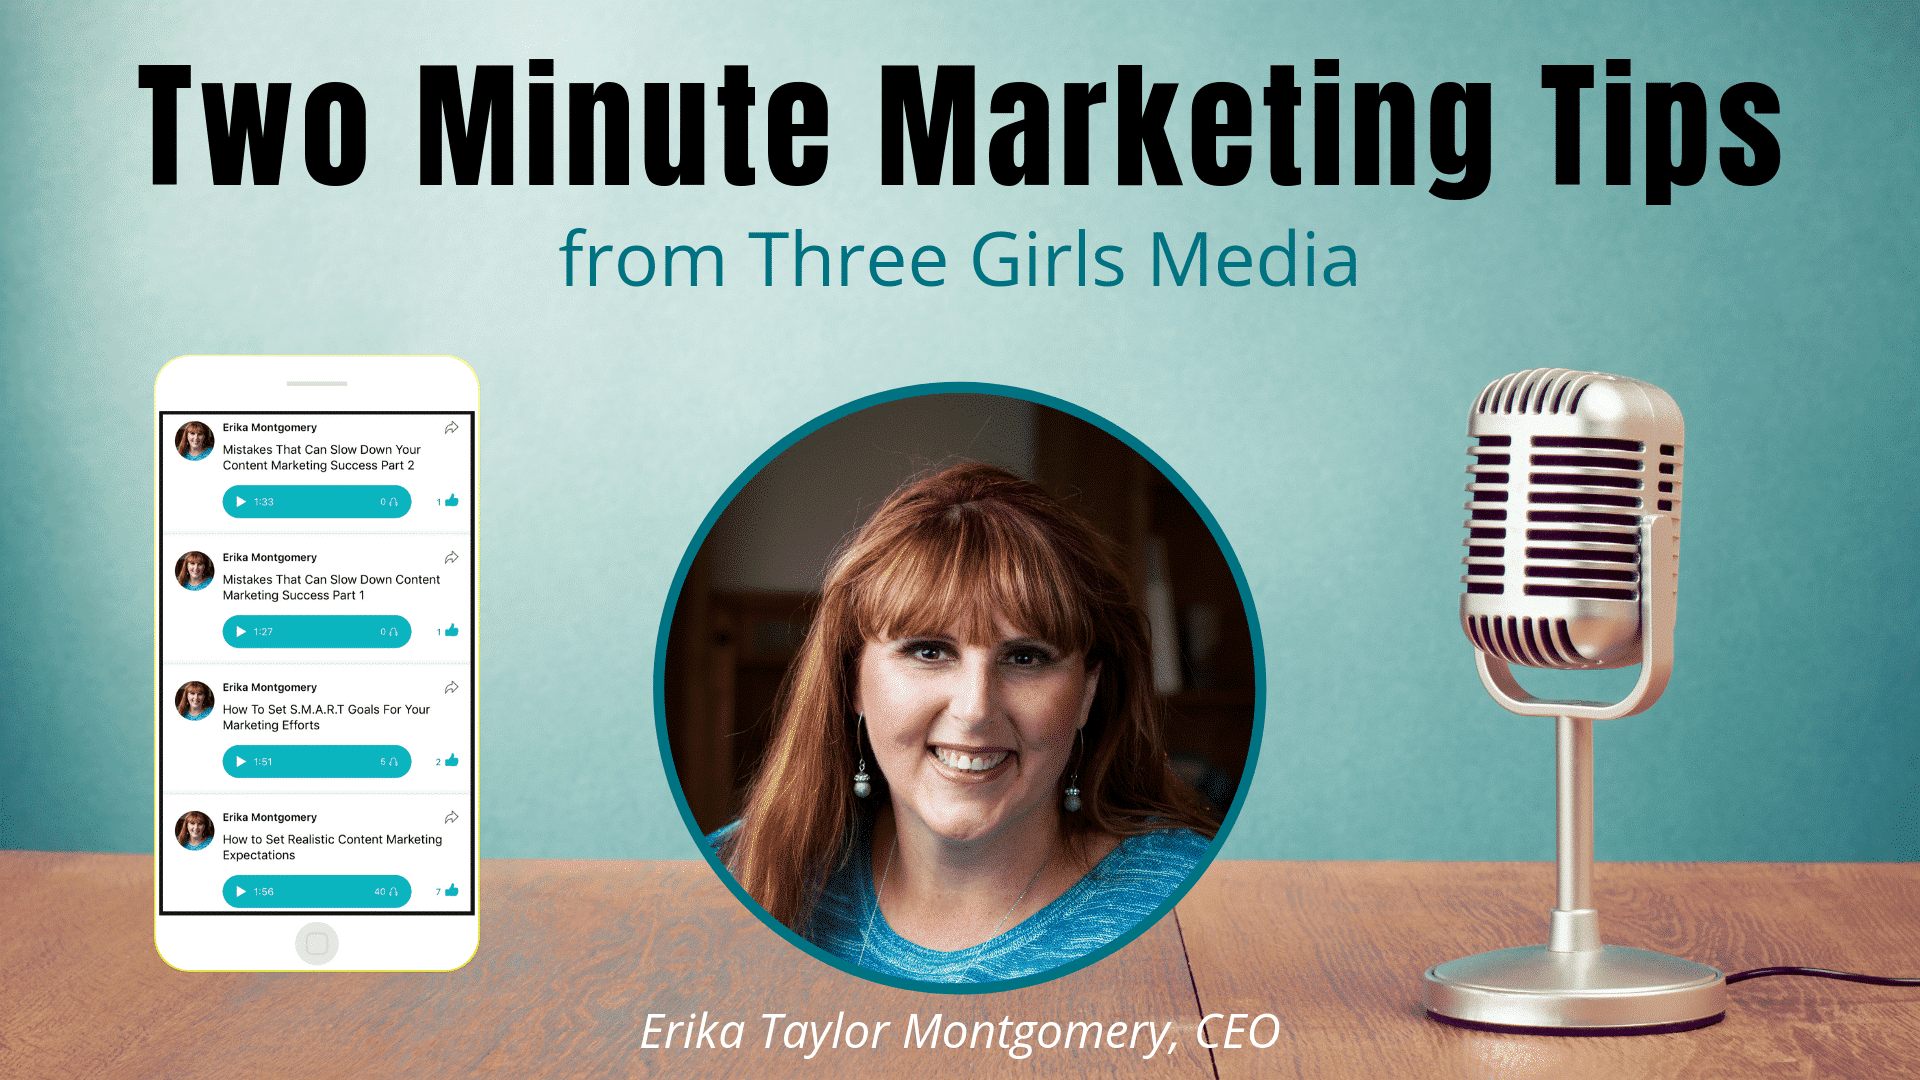 Two Minute Marketing Tips: 4 Must-Know Insider Secrets of Facebook Advertising Campaigns